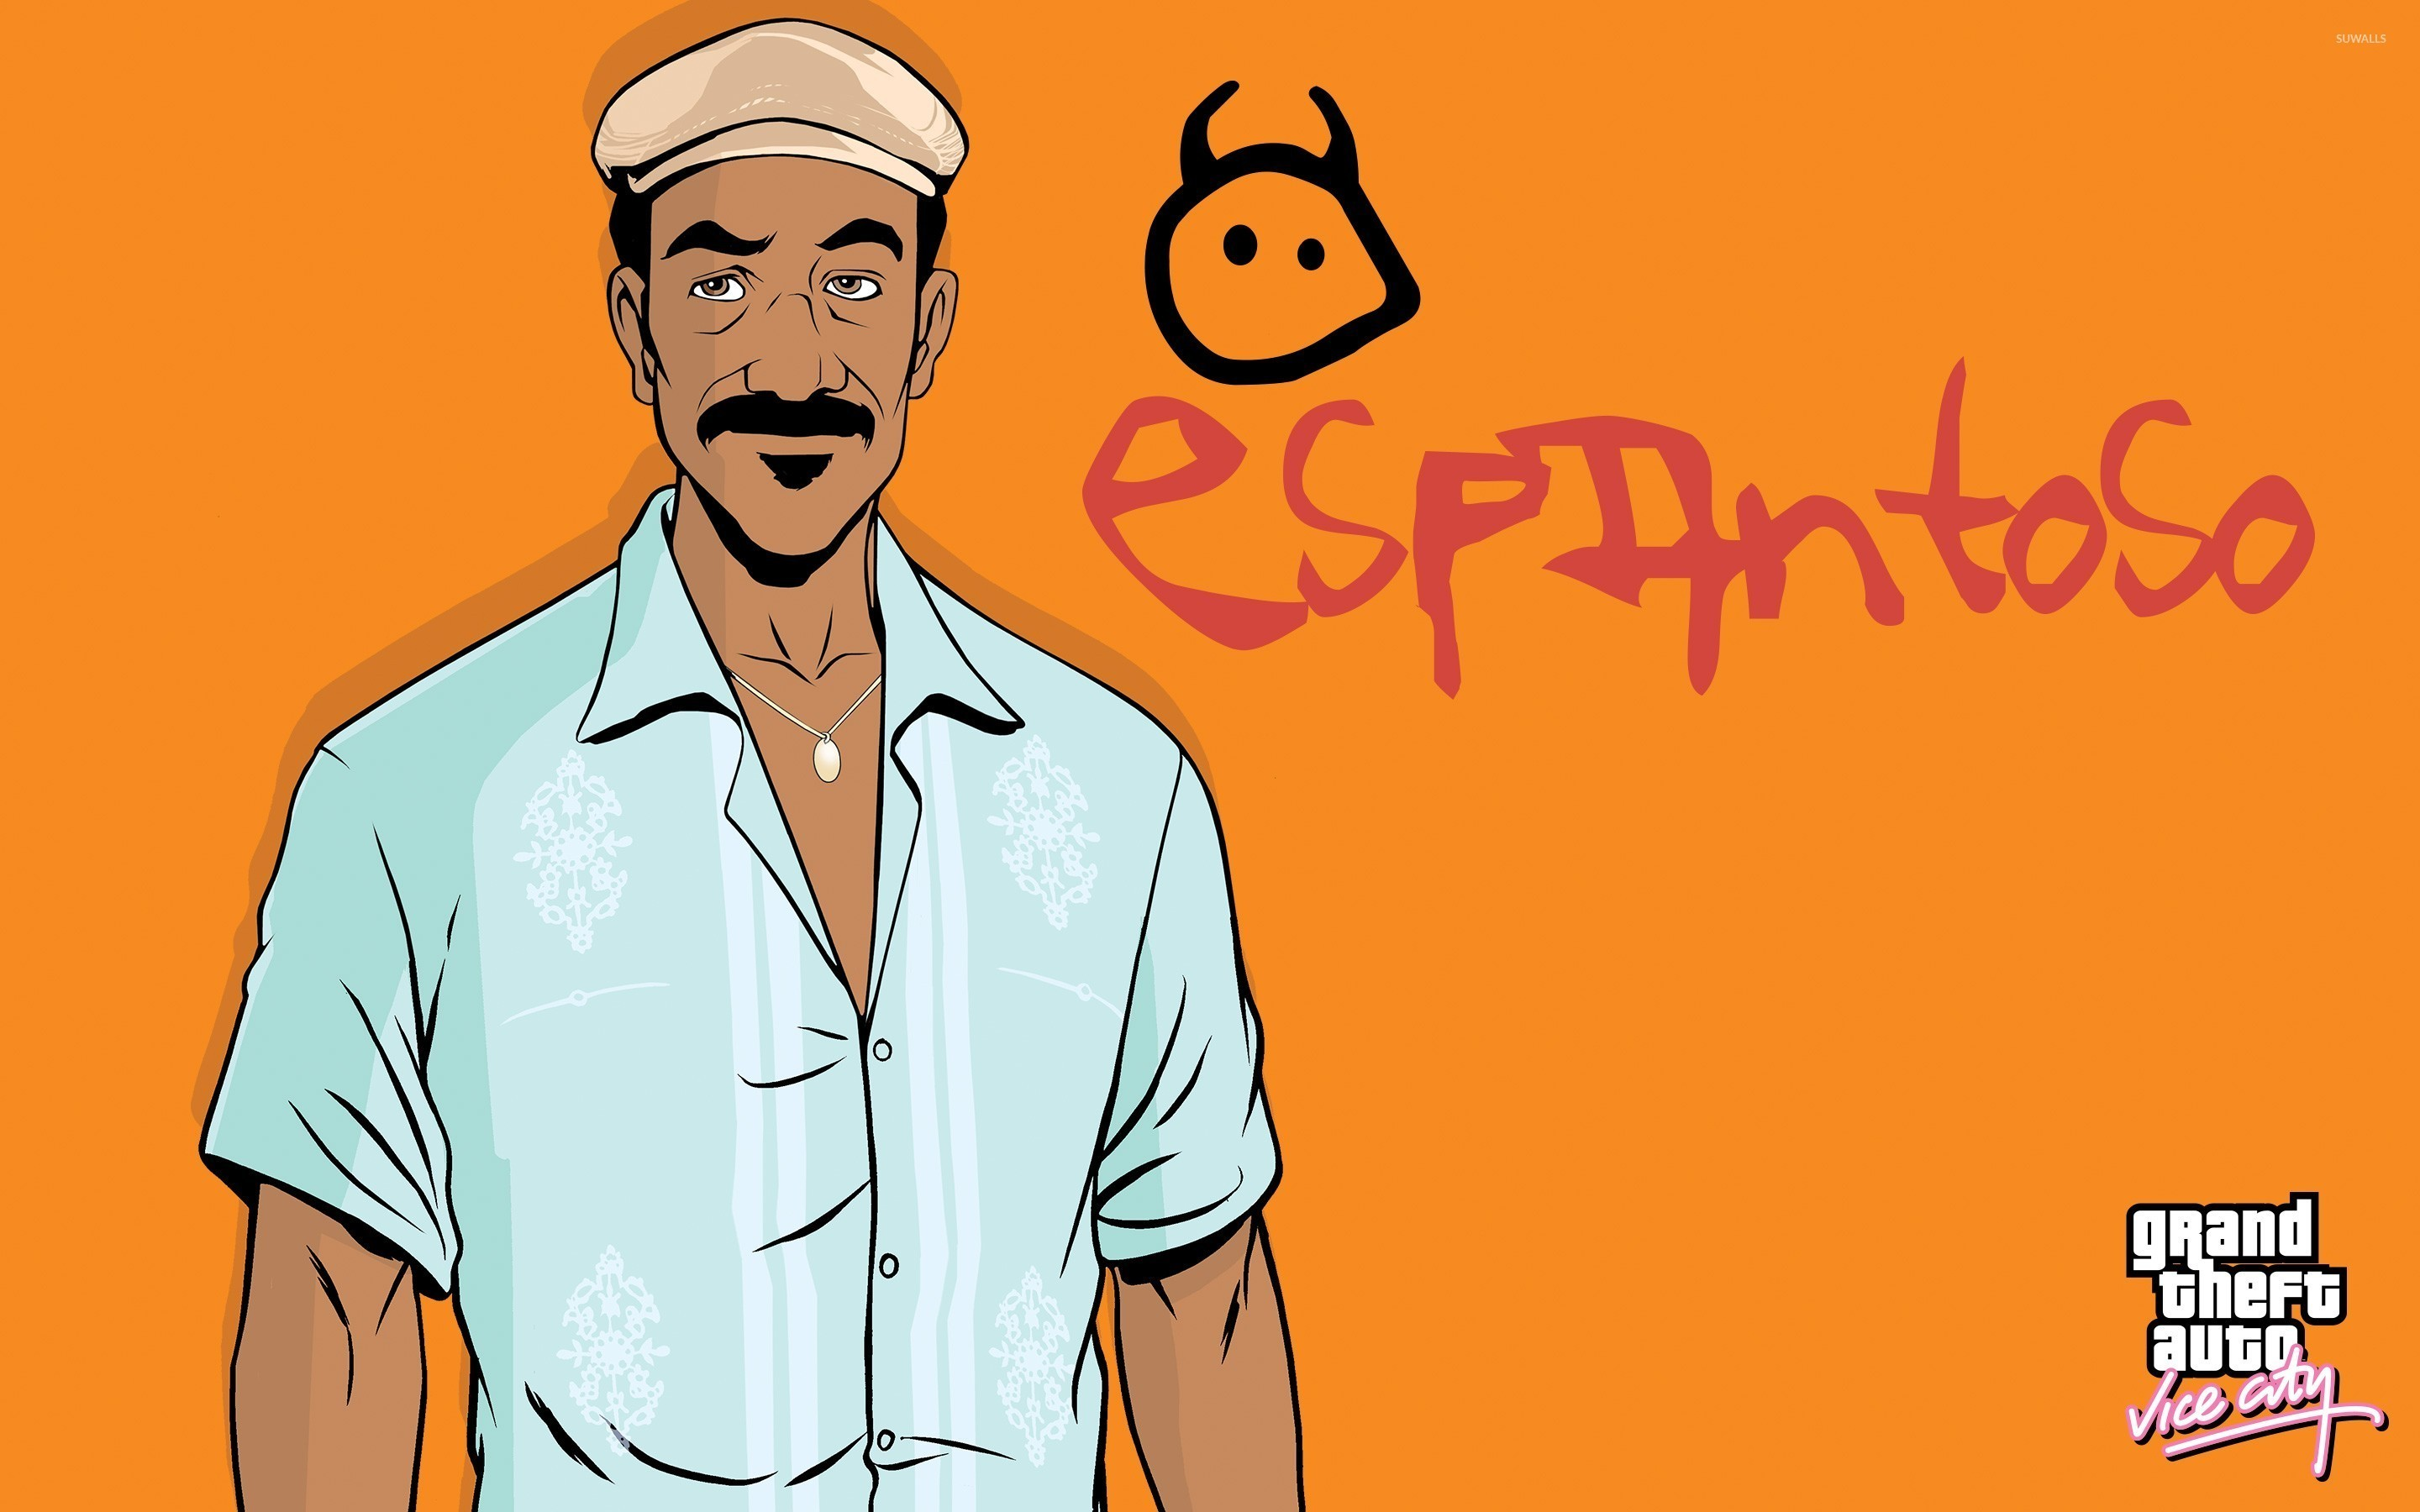 2880x1800 Vice City character in front of Radio Espantoso logo wallpaper